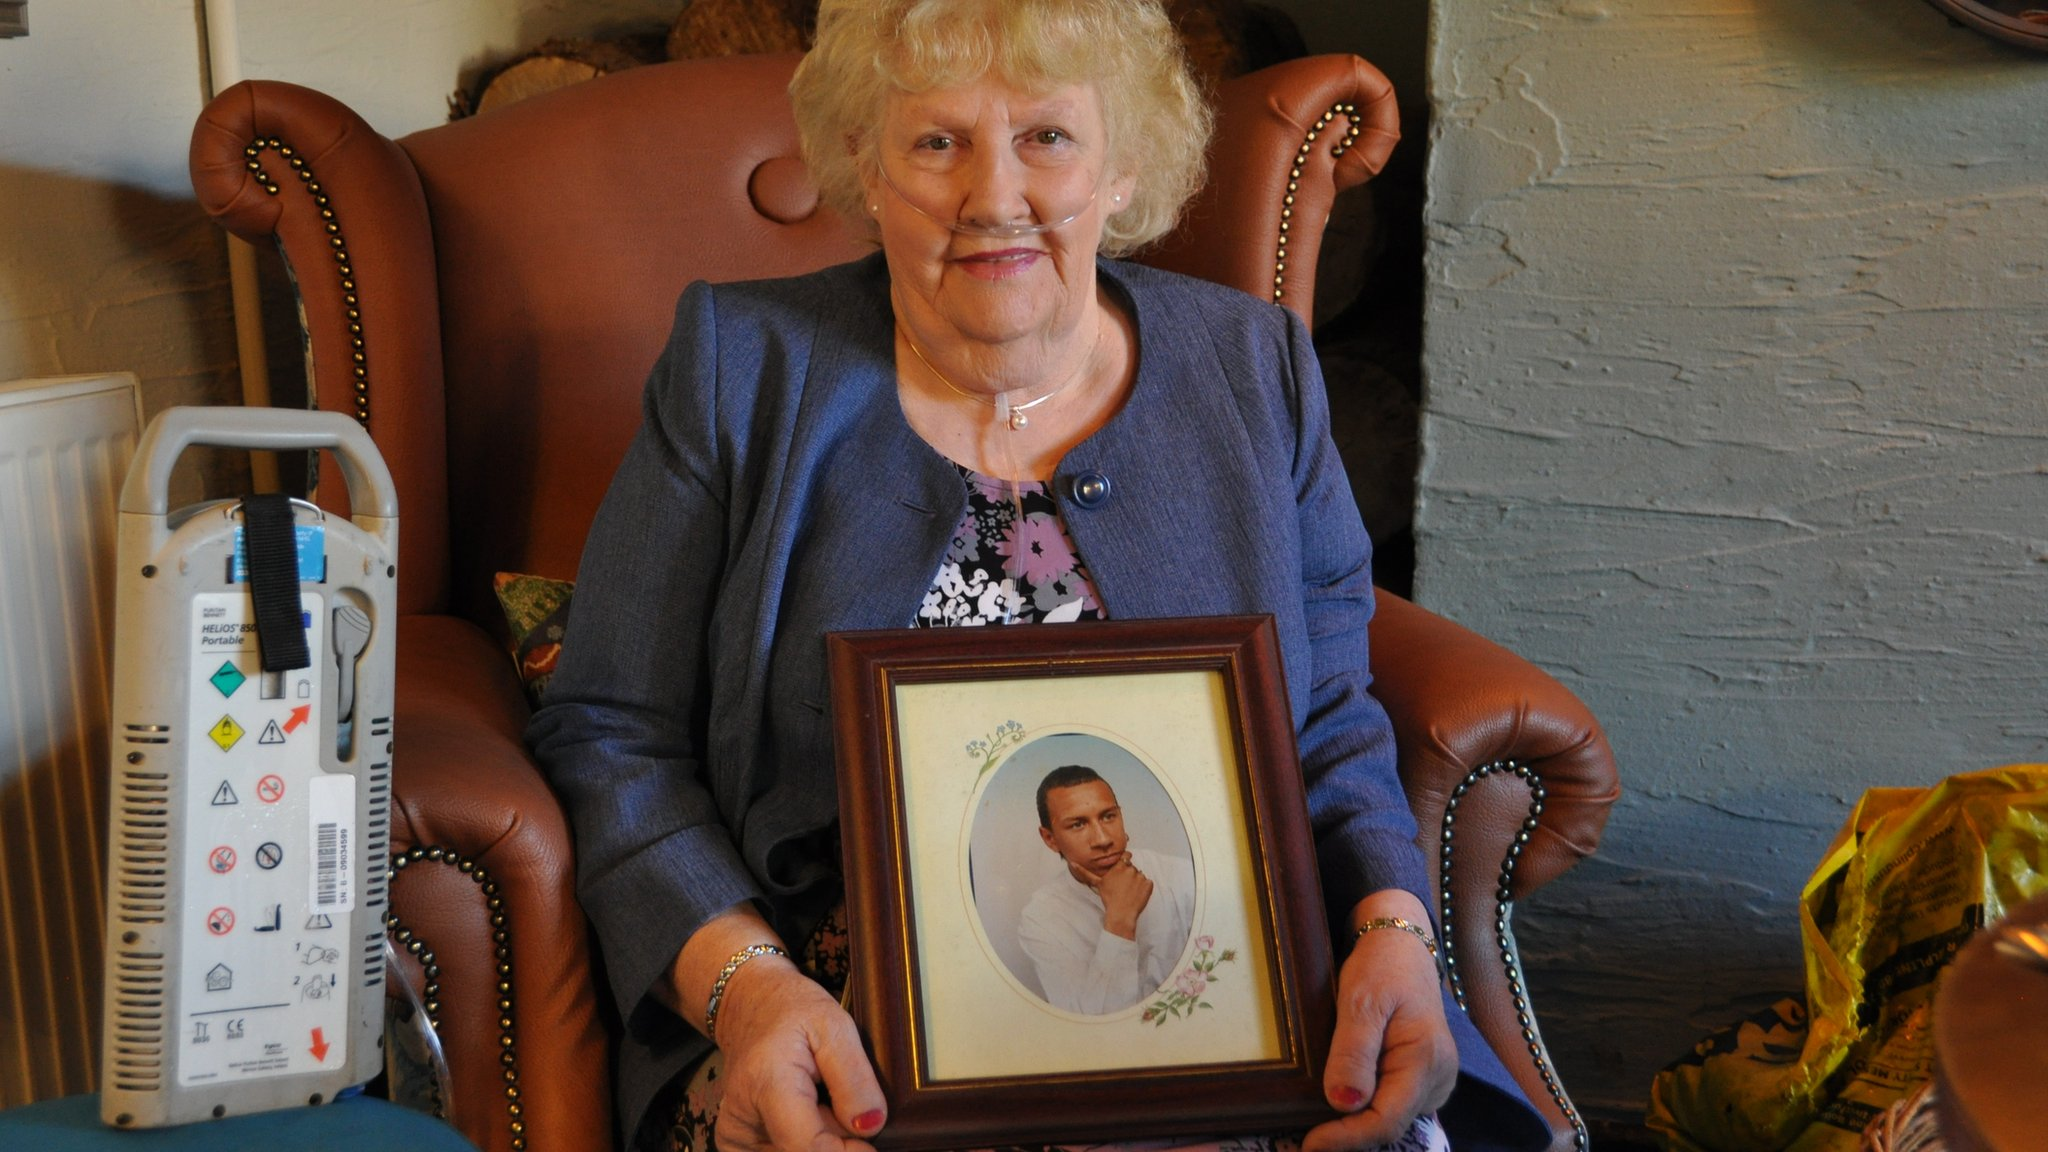 Gwenda Gage from Bristol is Headway's Carer of the Year